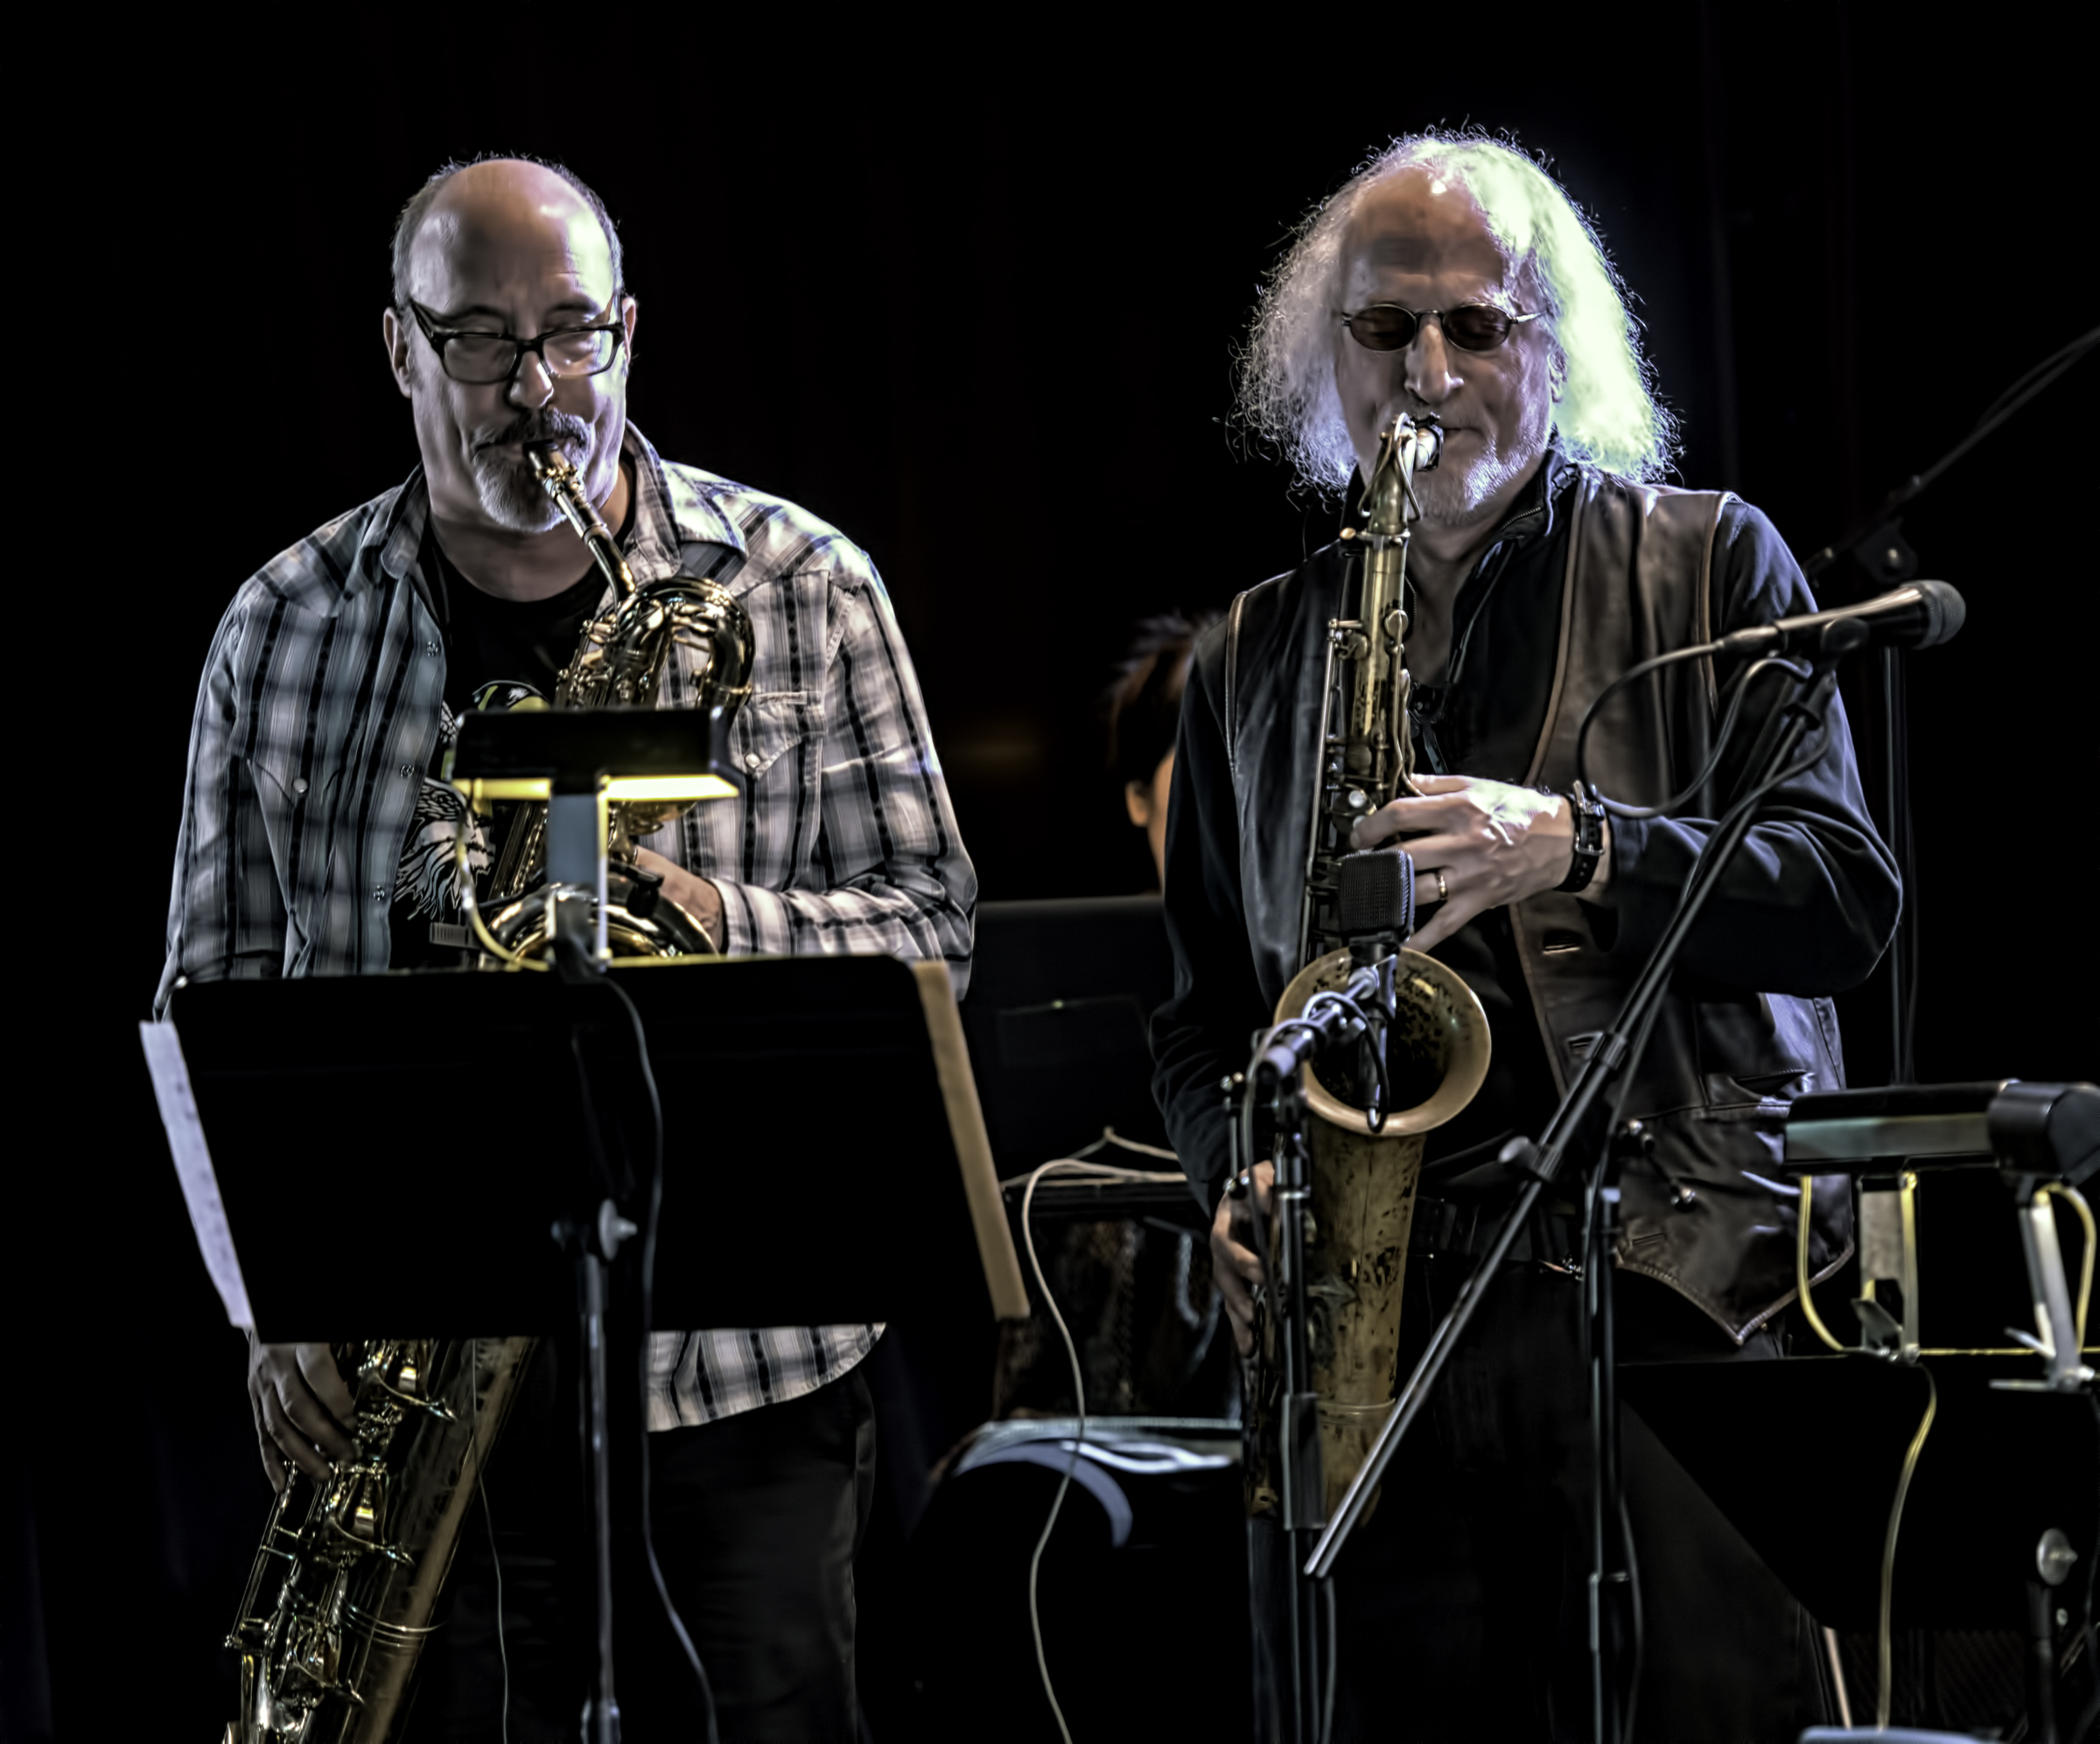 Jon Raskin and Larry Ochs with Rova's Electric Ascension at the NYC Winter Jazzfest 2016